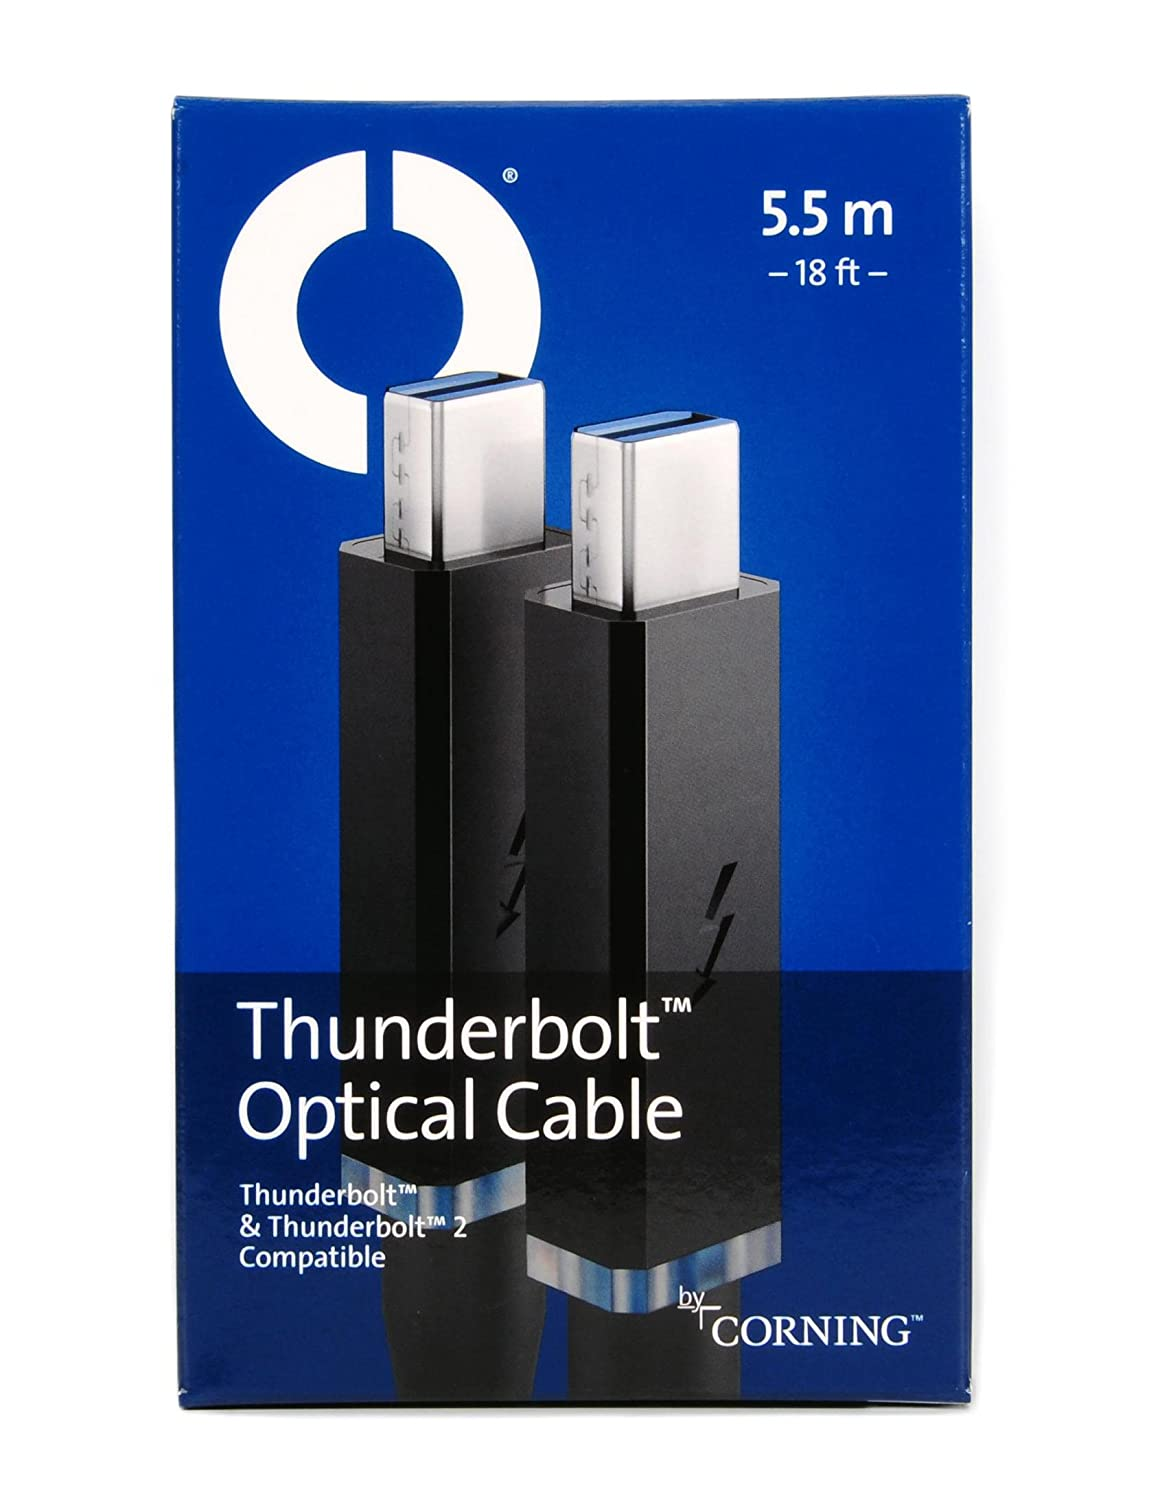 for Self-Powered Peripherals AOC-MMS4CVP5-5M20 Corning Thunderbolt Optical Cable 5.5m 18ft